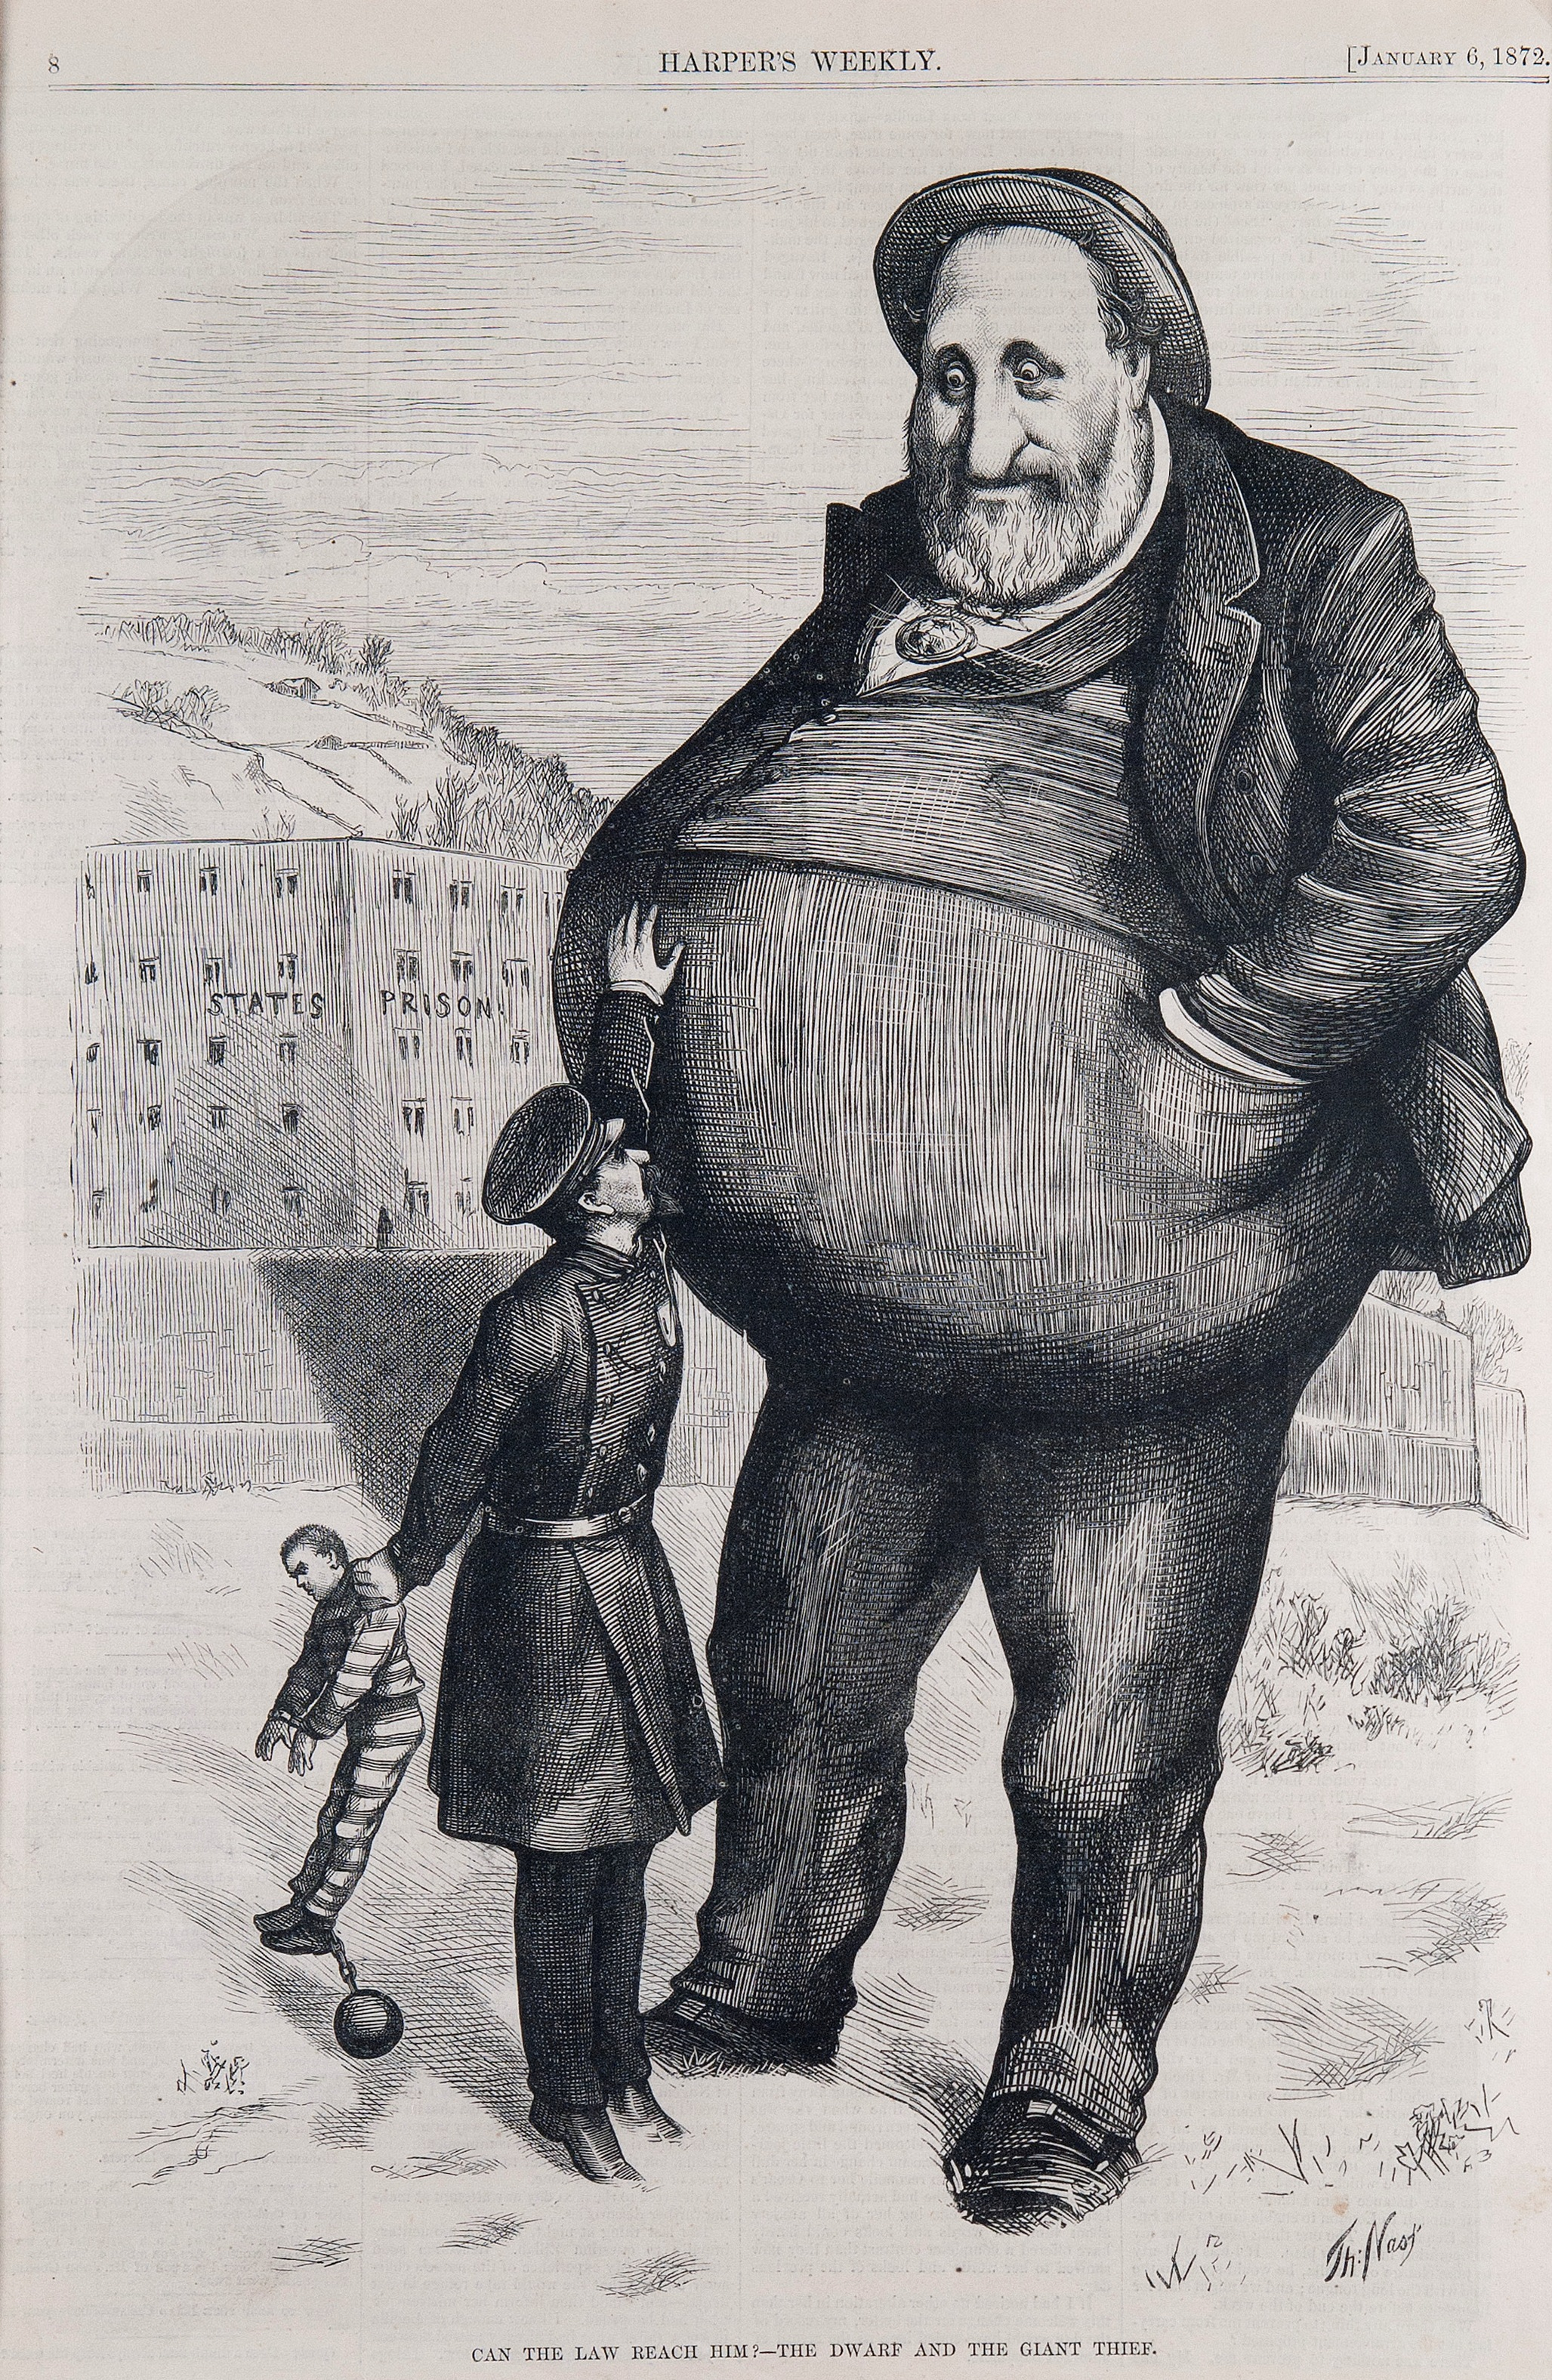 """In this political cartoon Nast depicts a child sized police officer with a captured thief in his left hand, struggling to reach for larger than life Boss Tweed with his right. Tweed, the corrupt head of the New York City Democratic Party, is centerfold, looking down on the officer with amusement, hands casually tucked in his pockets as the officer strains to reach Tweed's midsection. In the background is the """"State Prison,"""" looking much too small to hold the giant Tweed. With this cartoon Nast warns that Tweed's gowing political corruption and power can imbue him with an untouchable gift, making it impossible to take him down."""